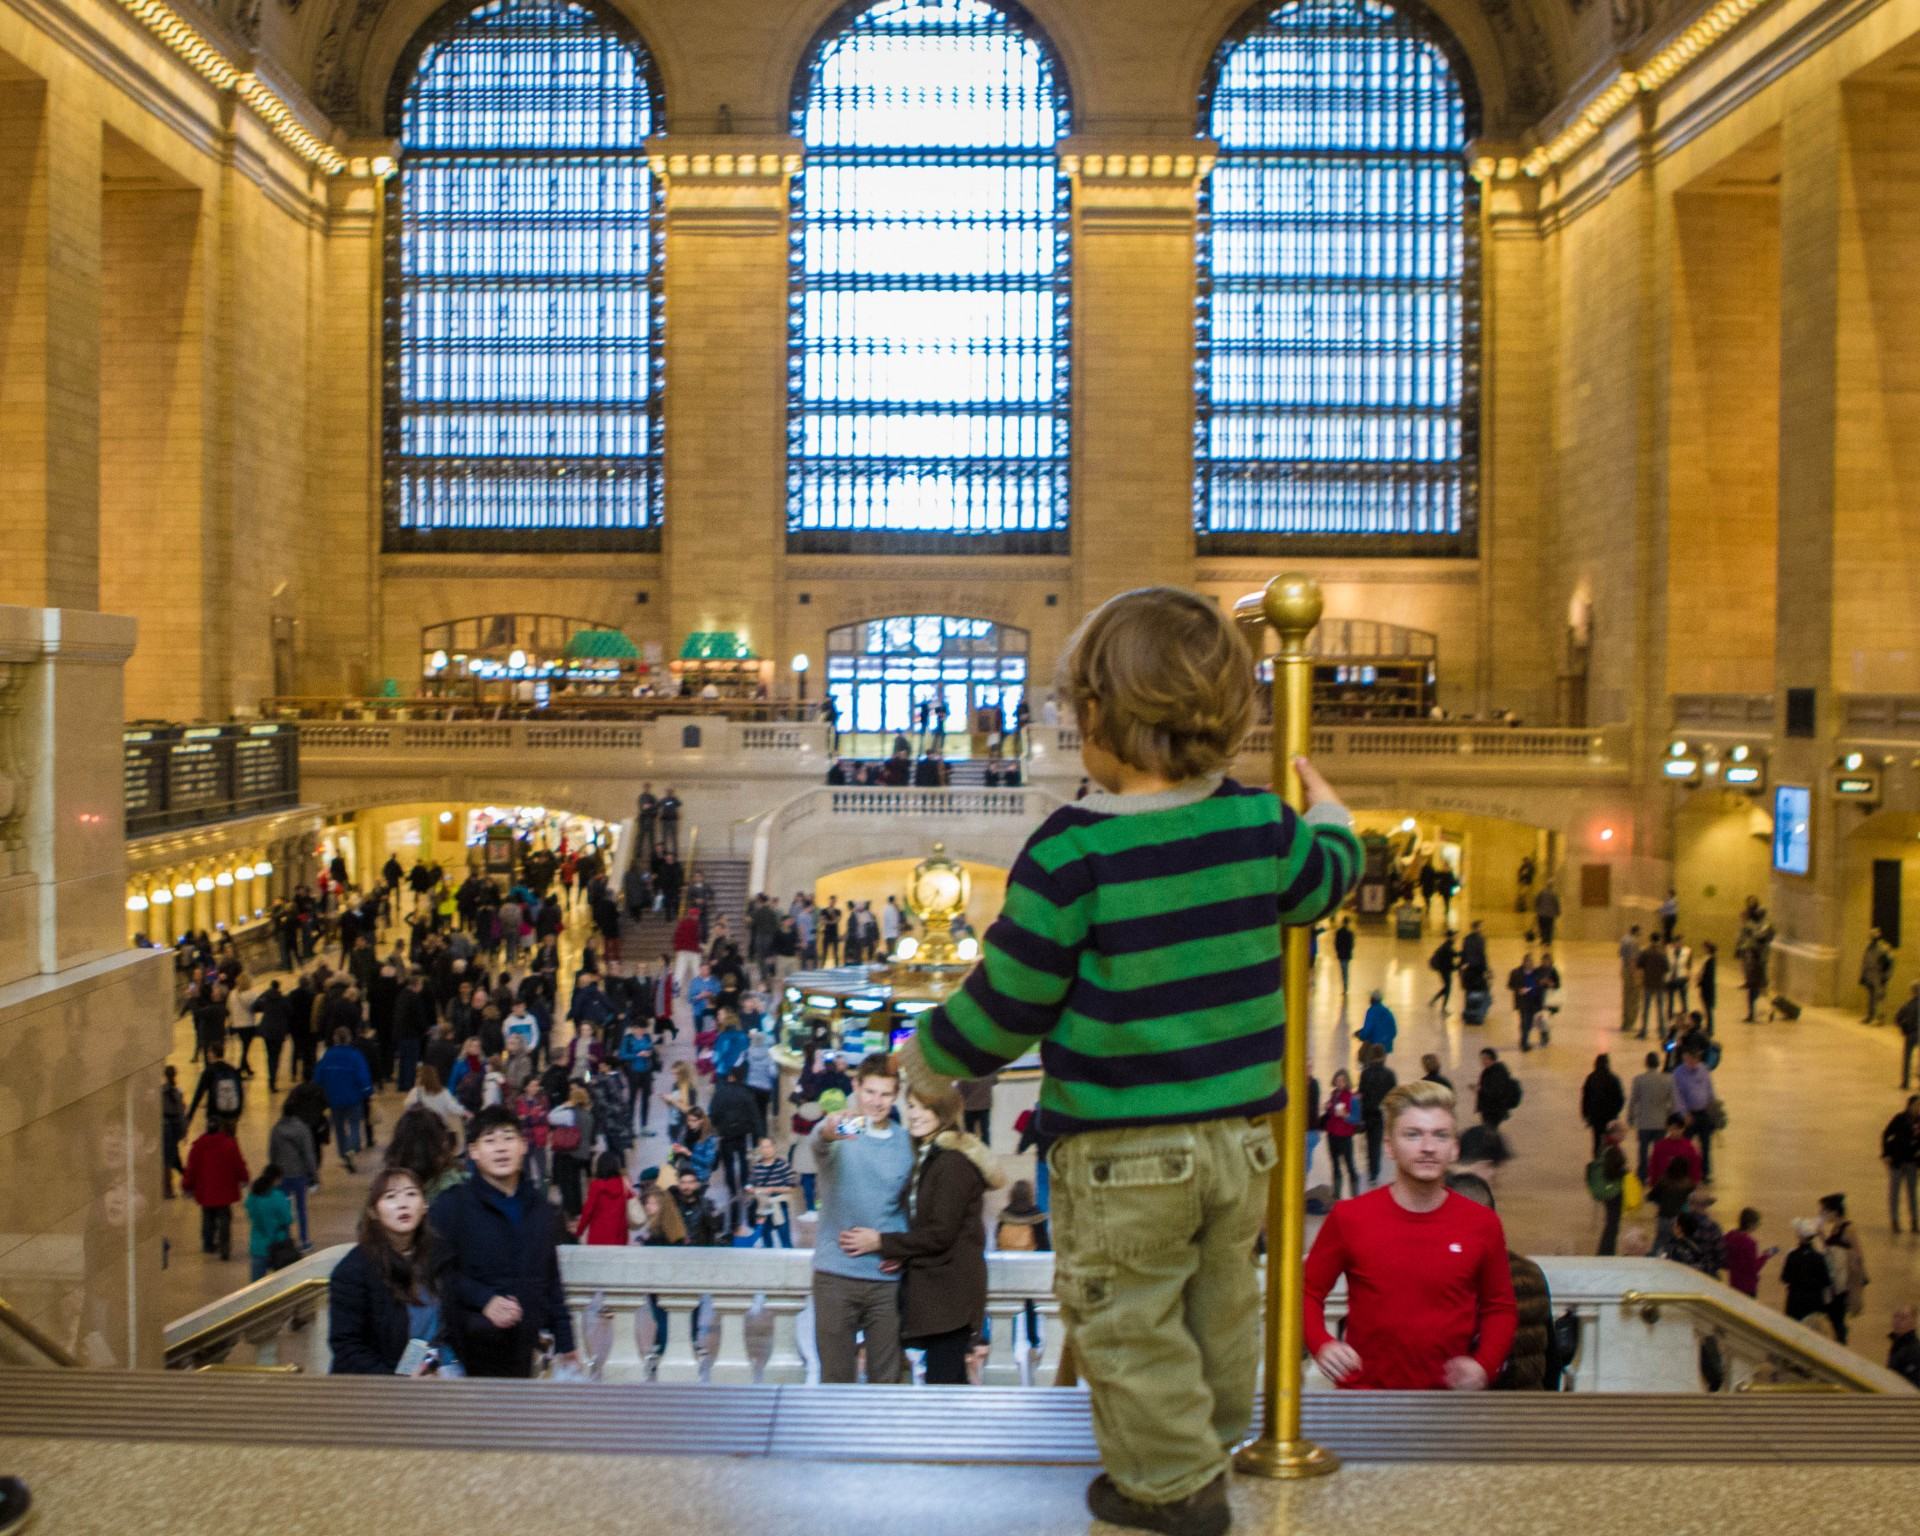 A toddler stands at the top of the stairs looking out over the inside of Grand Central Station in New York City